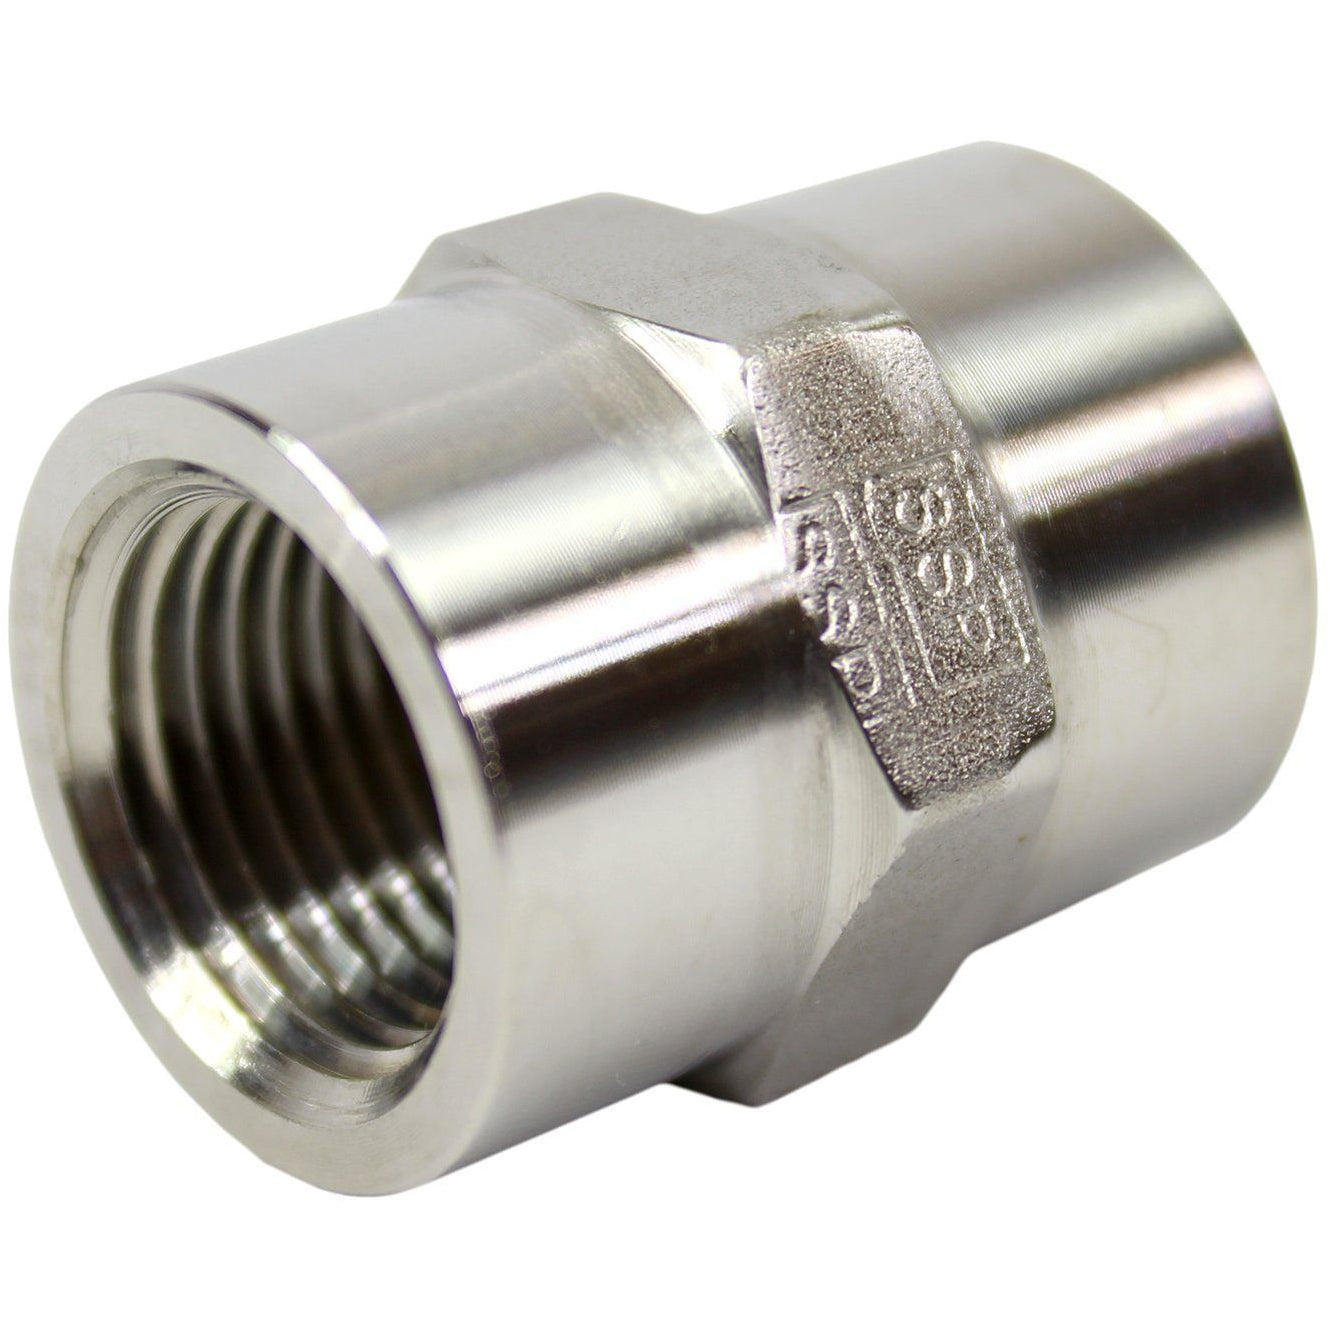 SSP - Hex Coupling Shop All Categories SSP Corporation 1/4-inch